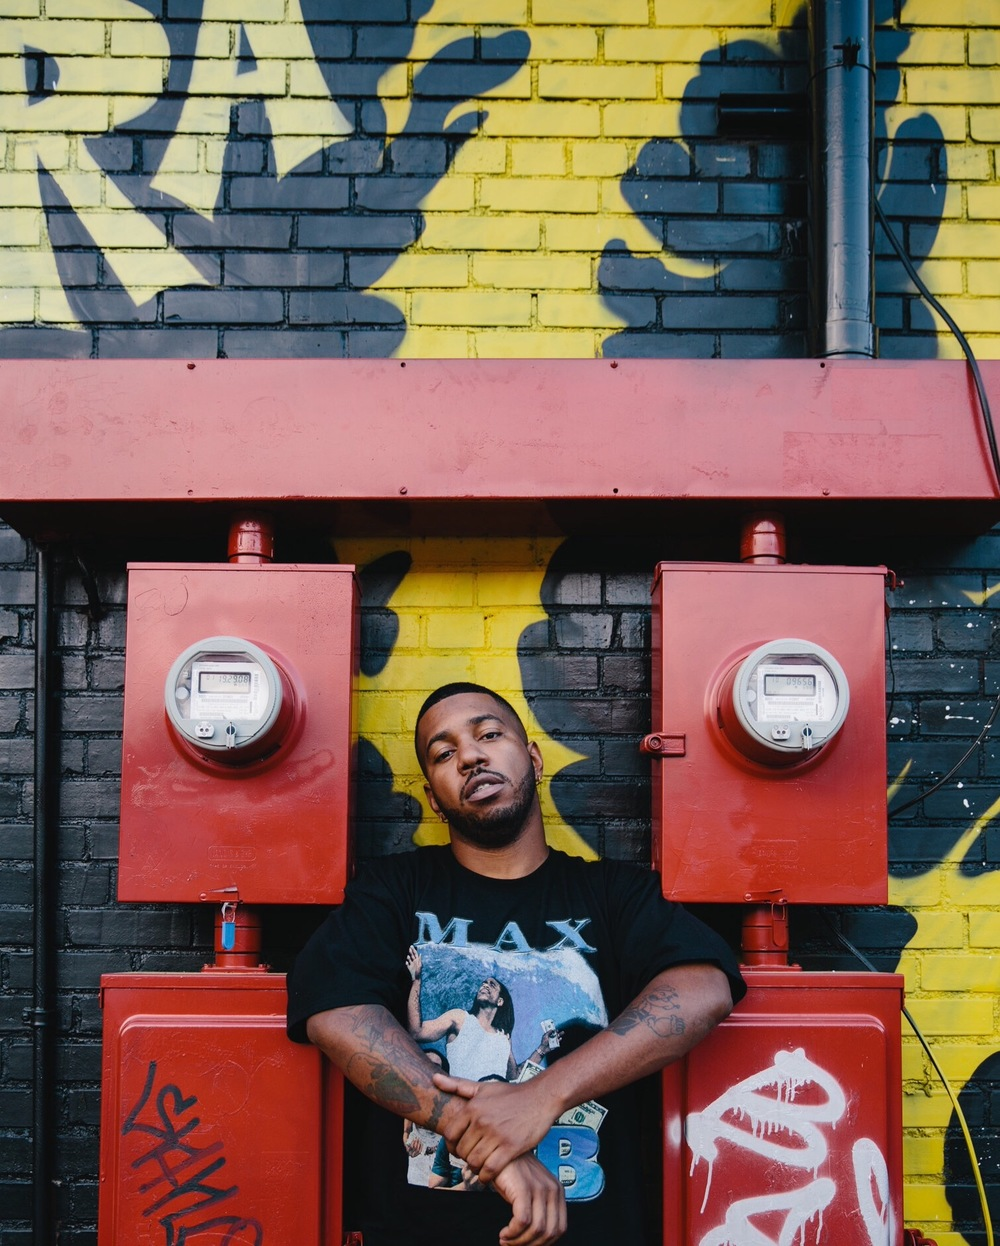 Chuck Inglish - Atlanta, 2015 Still - Max B Shirt - 2 --- Photo Credit to Zach Wolfe.jpg